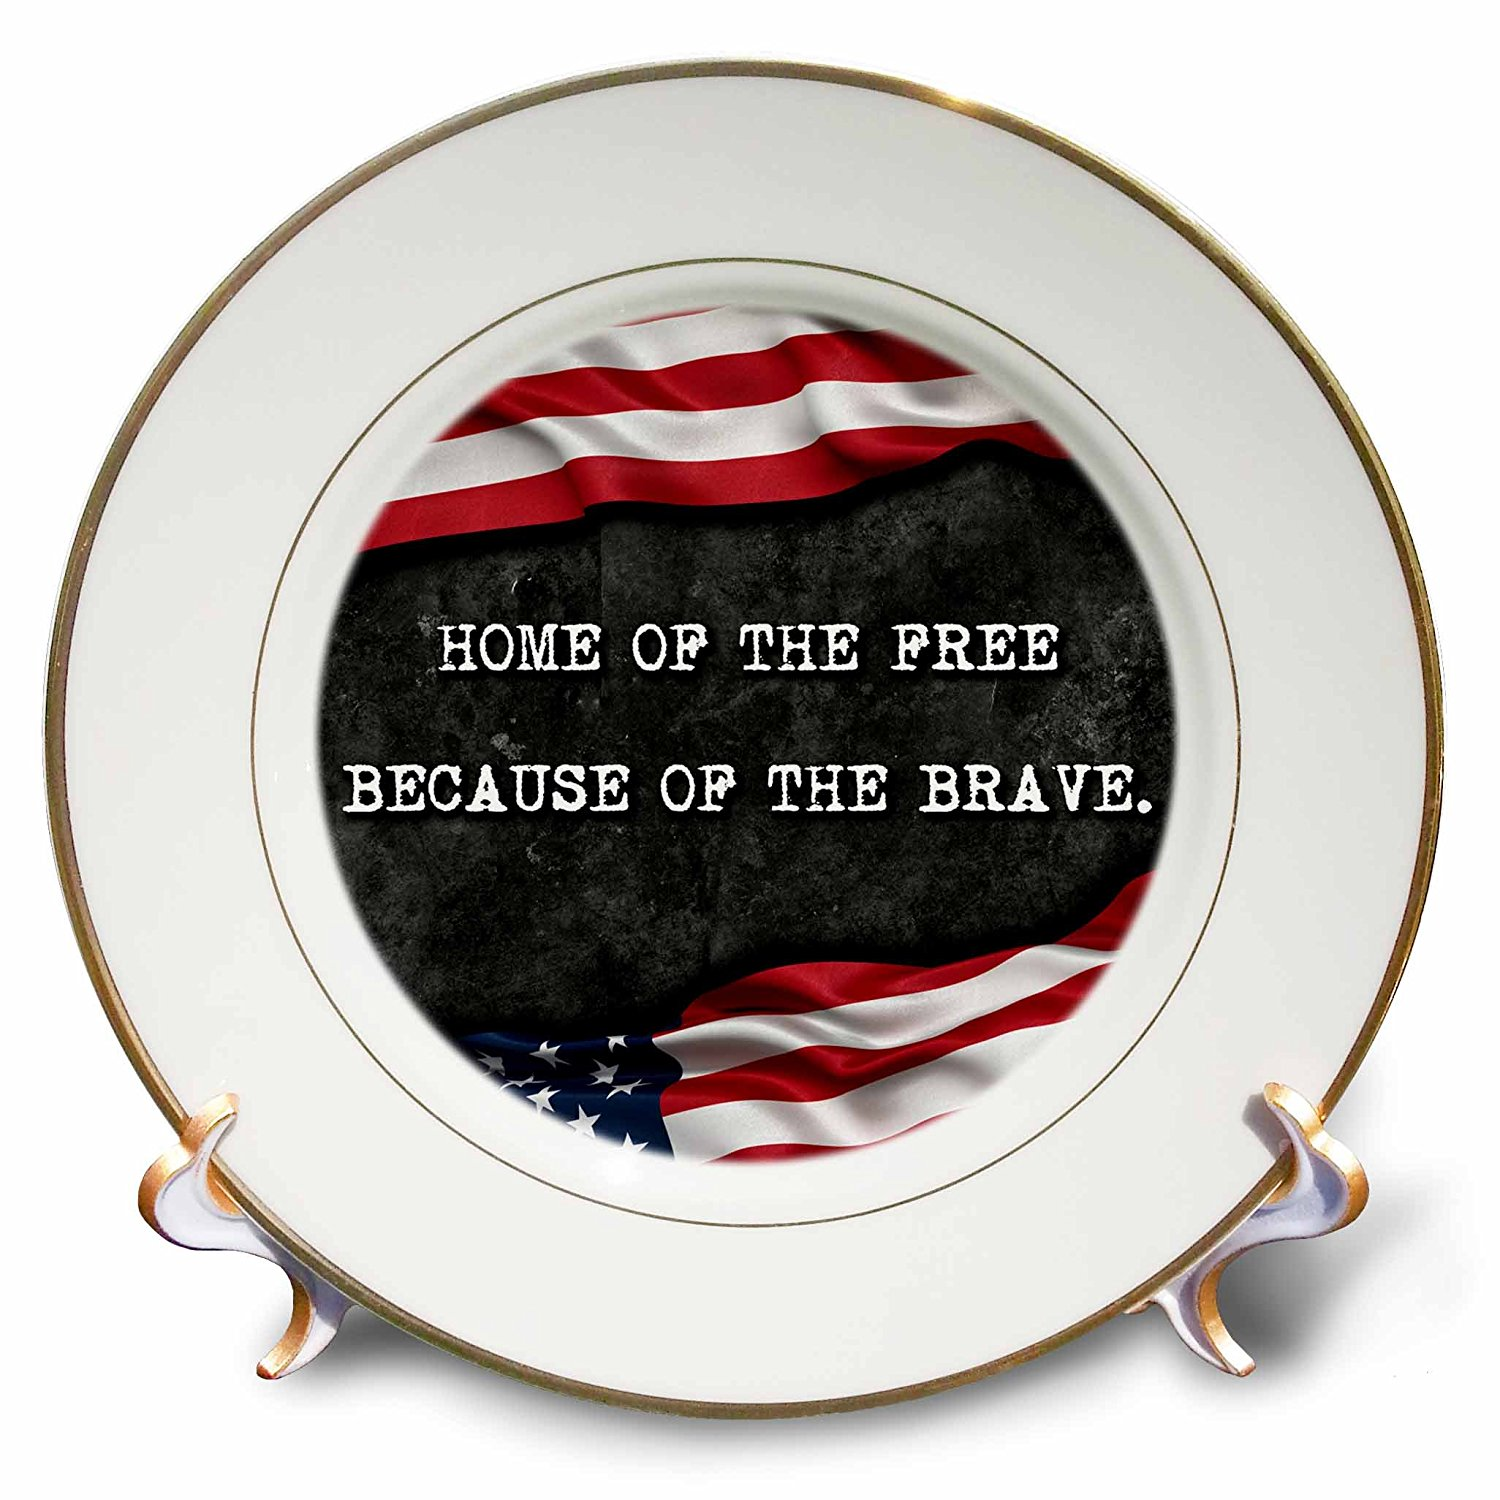 Carsten Reisinger - Illustrations - Home of the free because of the brave. Patriotic quote. - 8 inch Porcelain Plate (cp_237417_1)